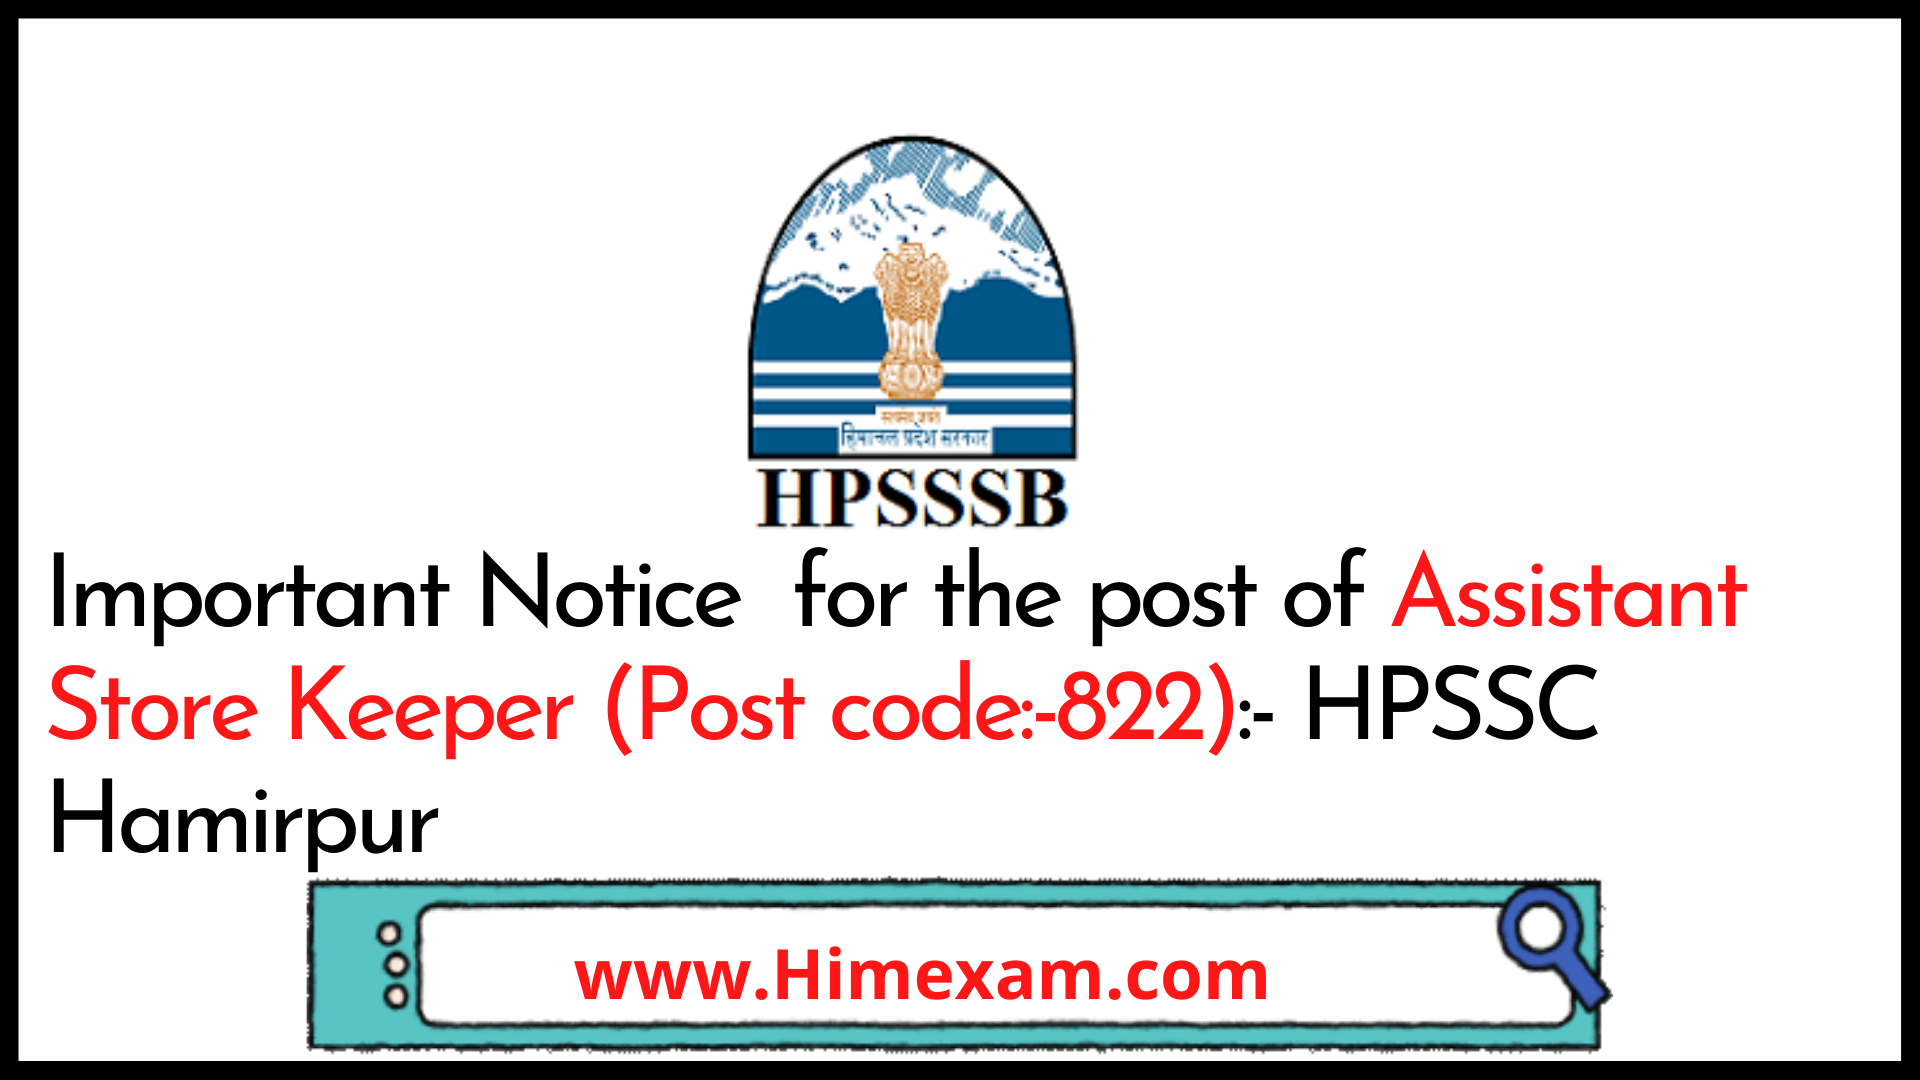 Important Notice  for the post of Assistant Store Keeper (Post code:-822):- HPSSC Hamirpur